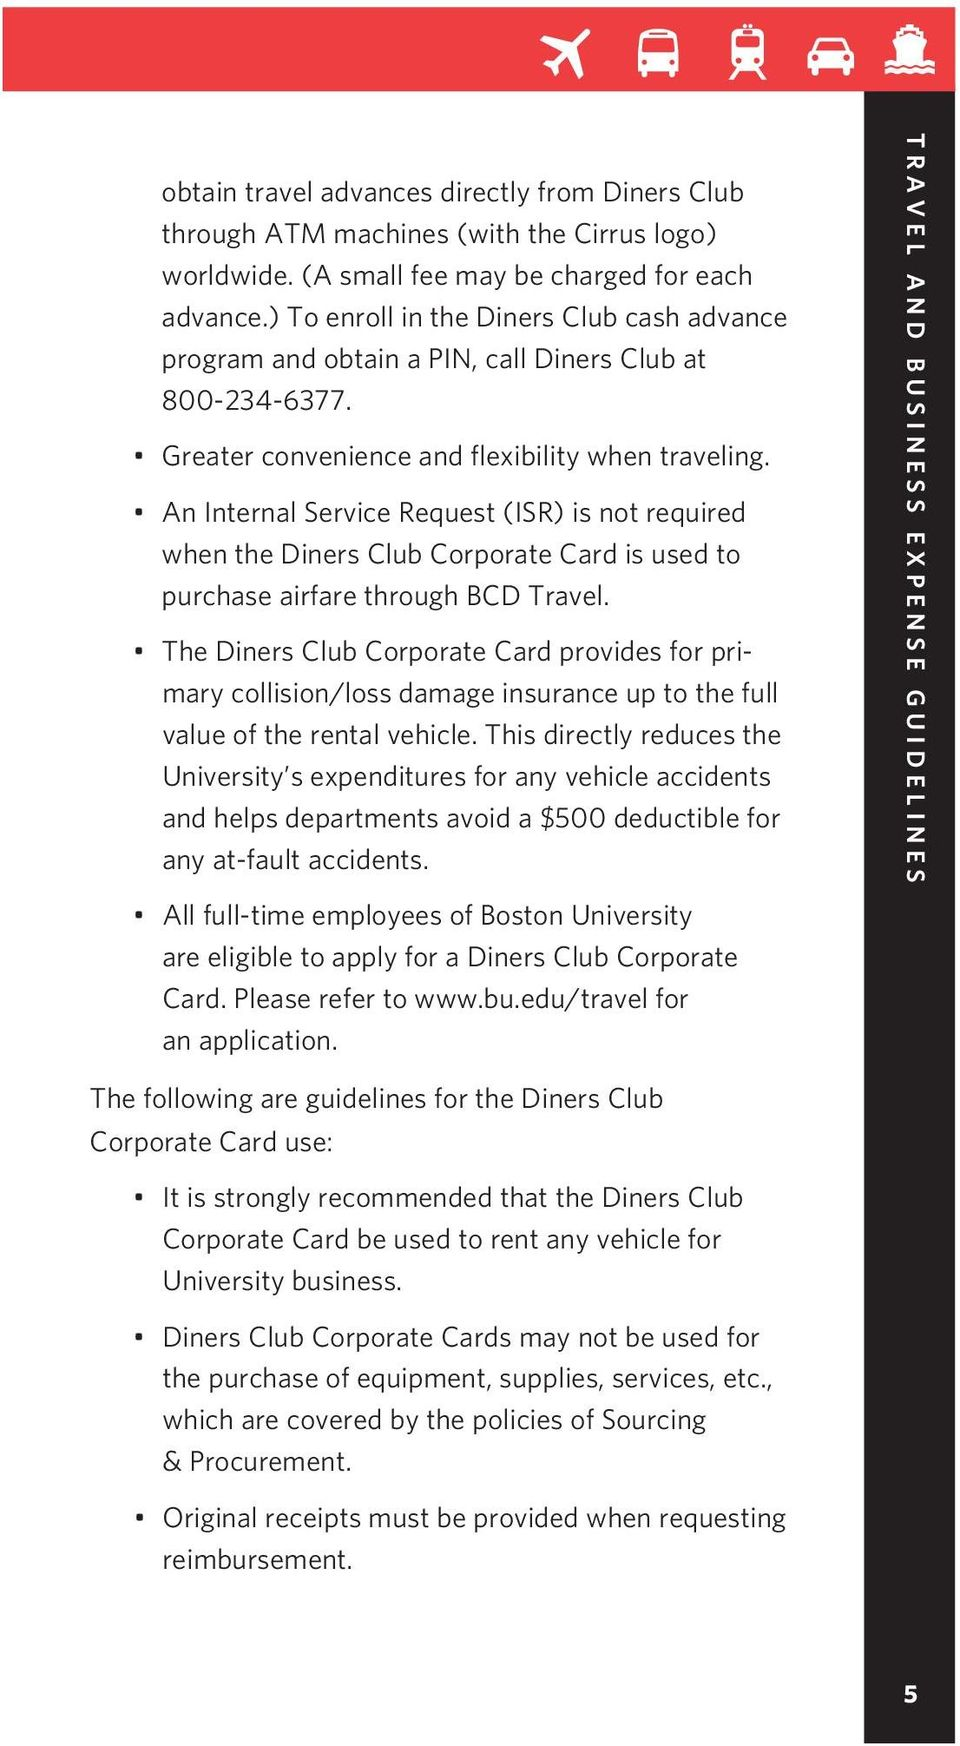 An Internal Service Request (ISR) is not required when the Diners Club Corporate Card is used to purchase airfare through BCD Travel.